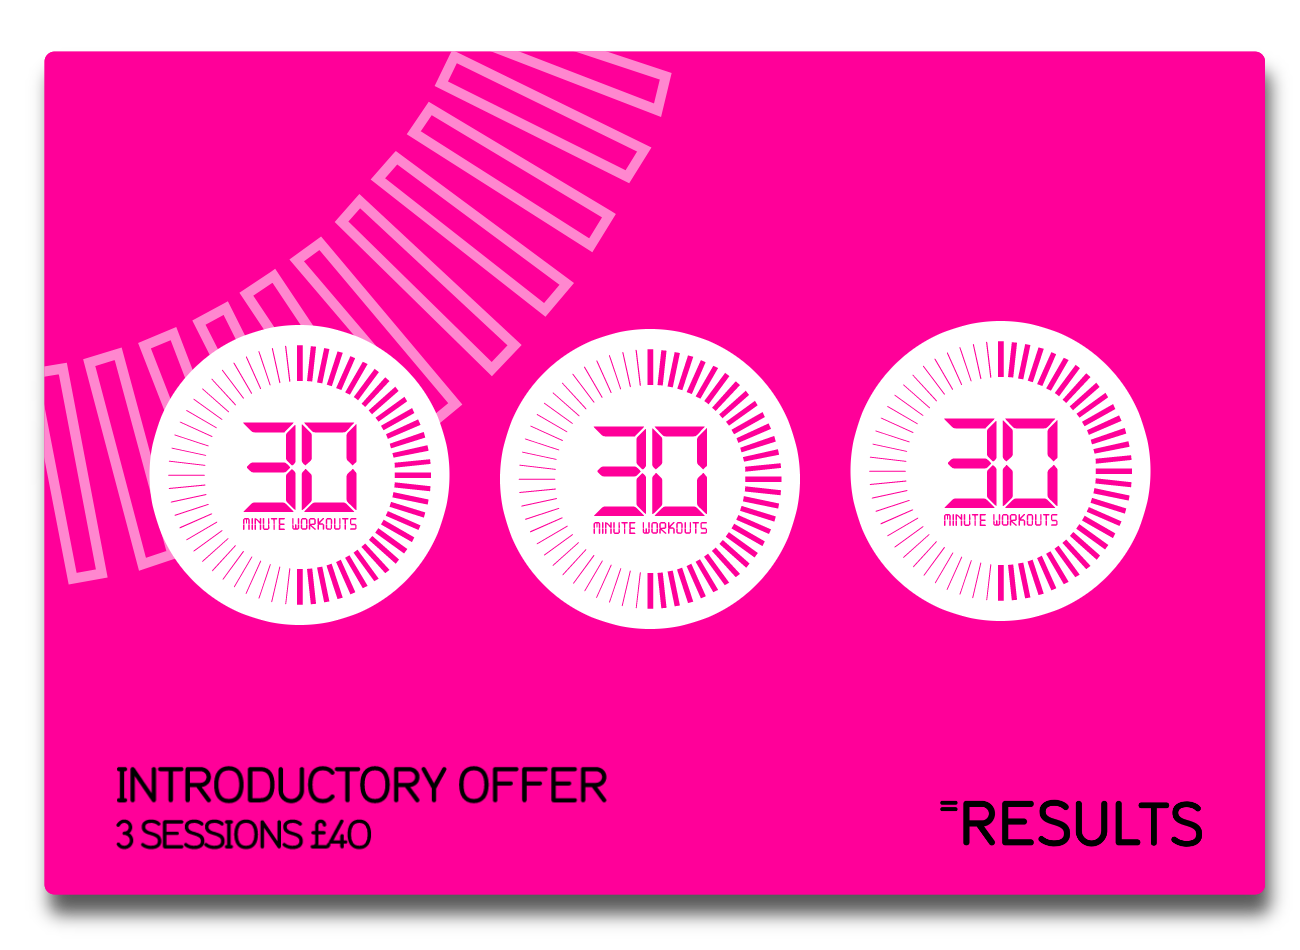 Get your introductory offer (3 sessions for £40) by filling out the form below. - And we'll be in touch to book you in.